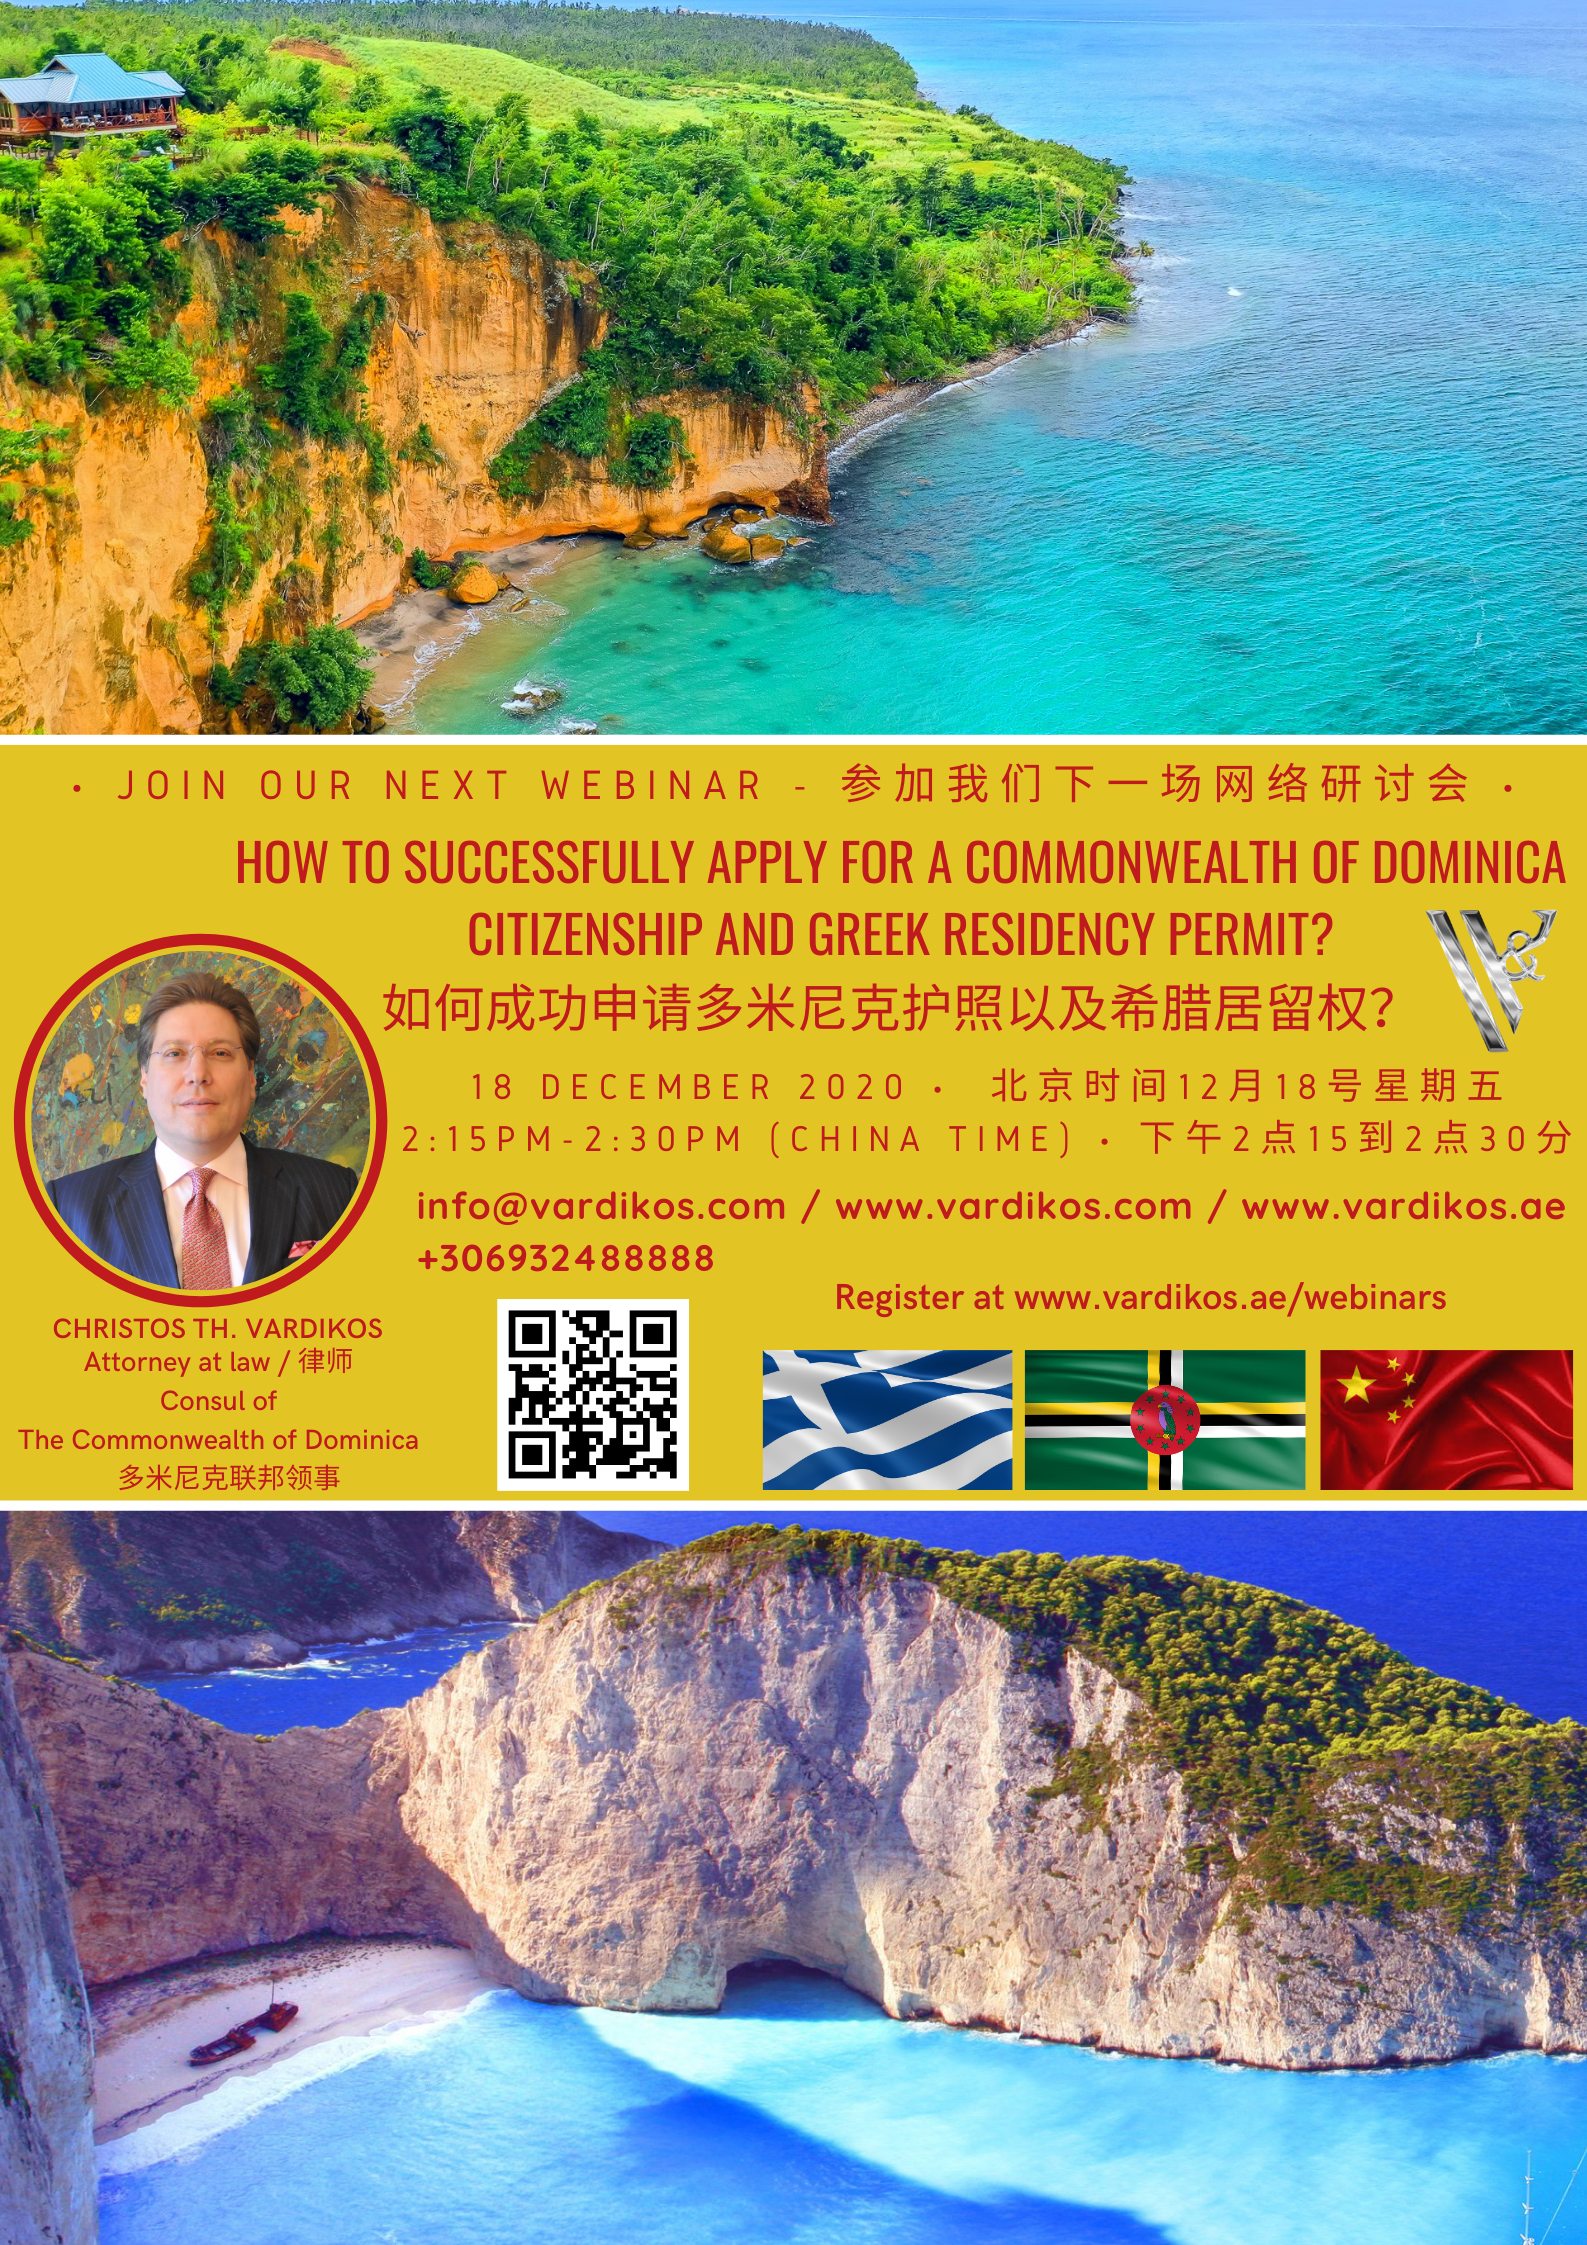 Webinar 18.12.2020 - How to successfully apply for a Commonwealth of Dominica Citizenship and Greek Residency Permit